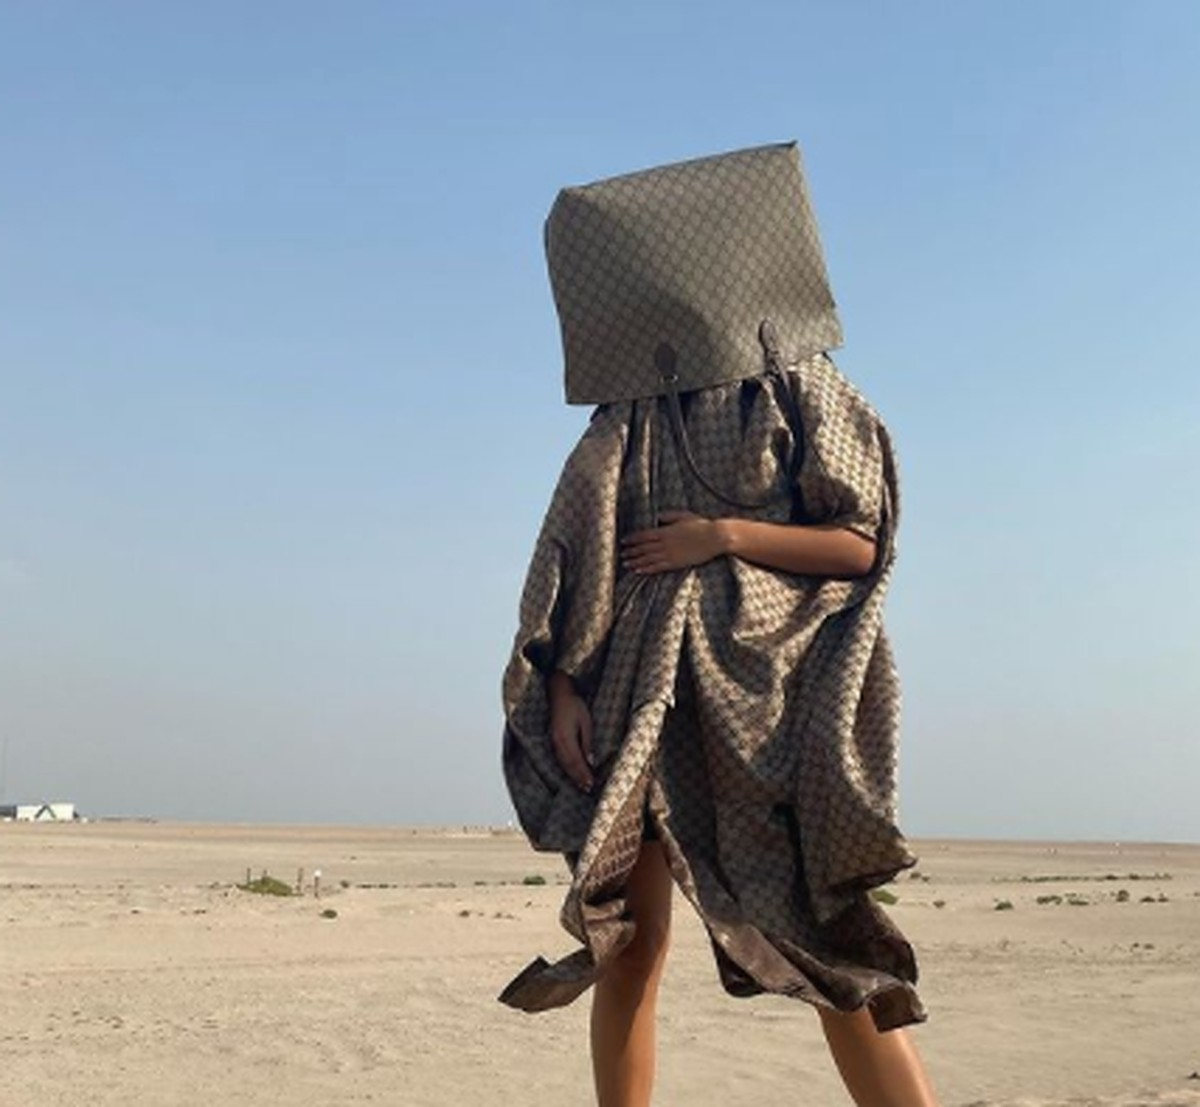 In Photos: Other Hijab and Women's Blurred Identity in the Arab World